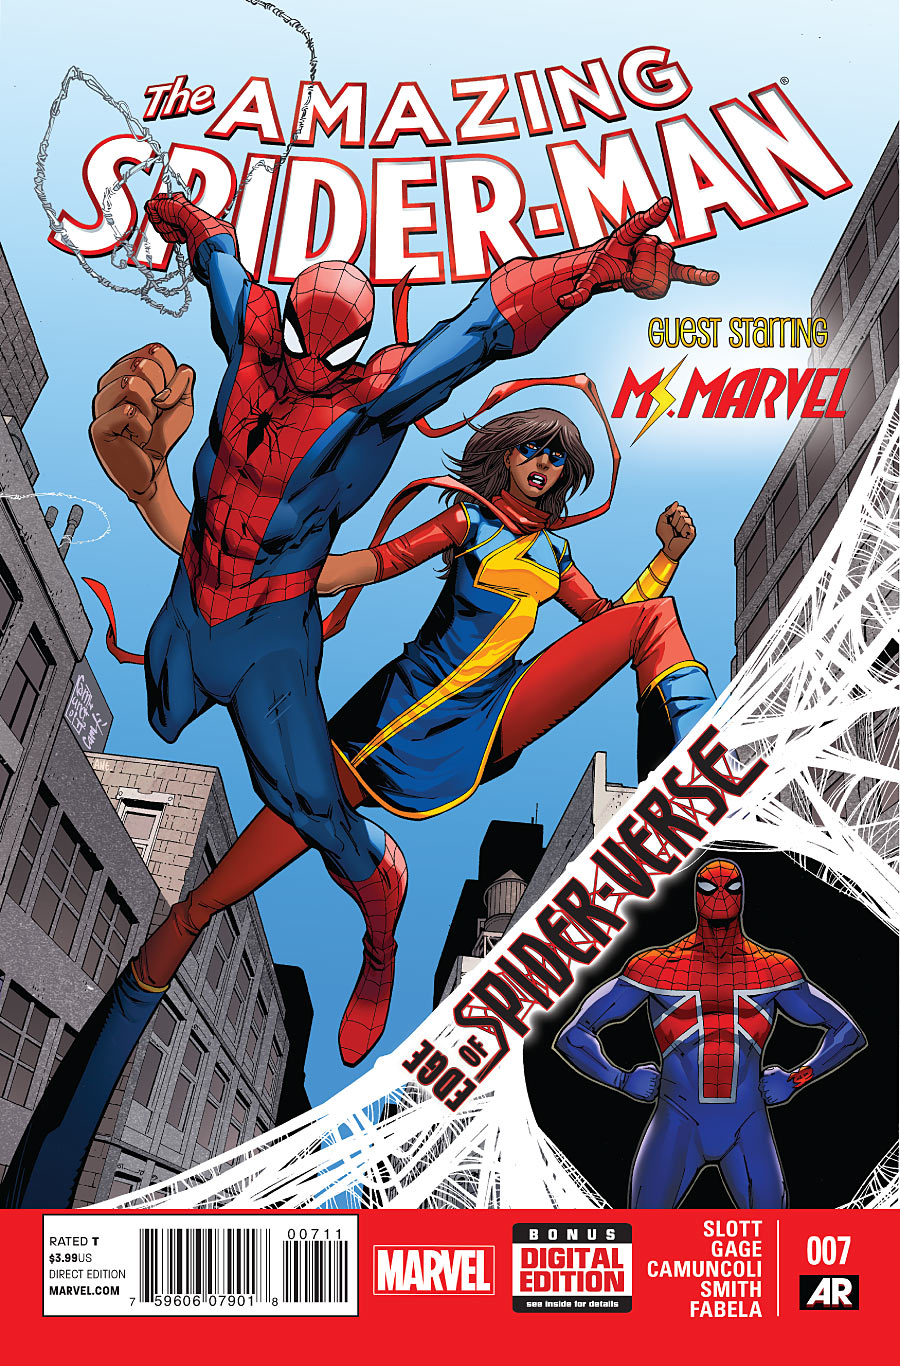 The Amazing Spider-Man 7 - Issue 7